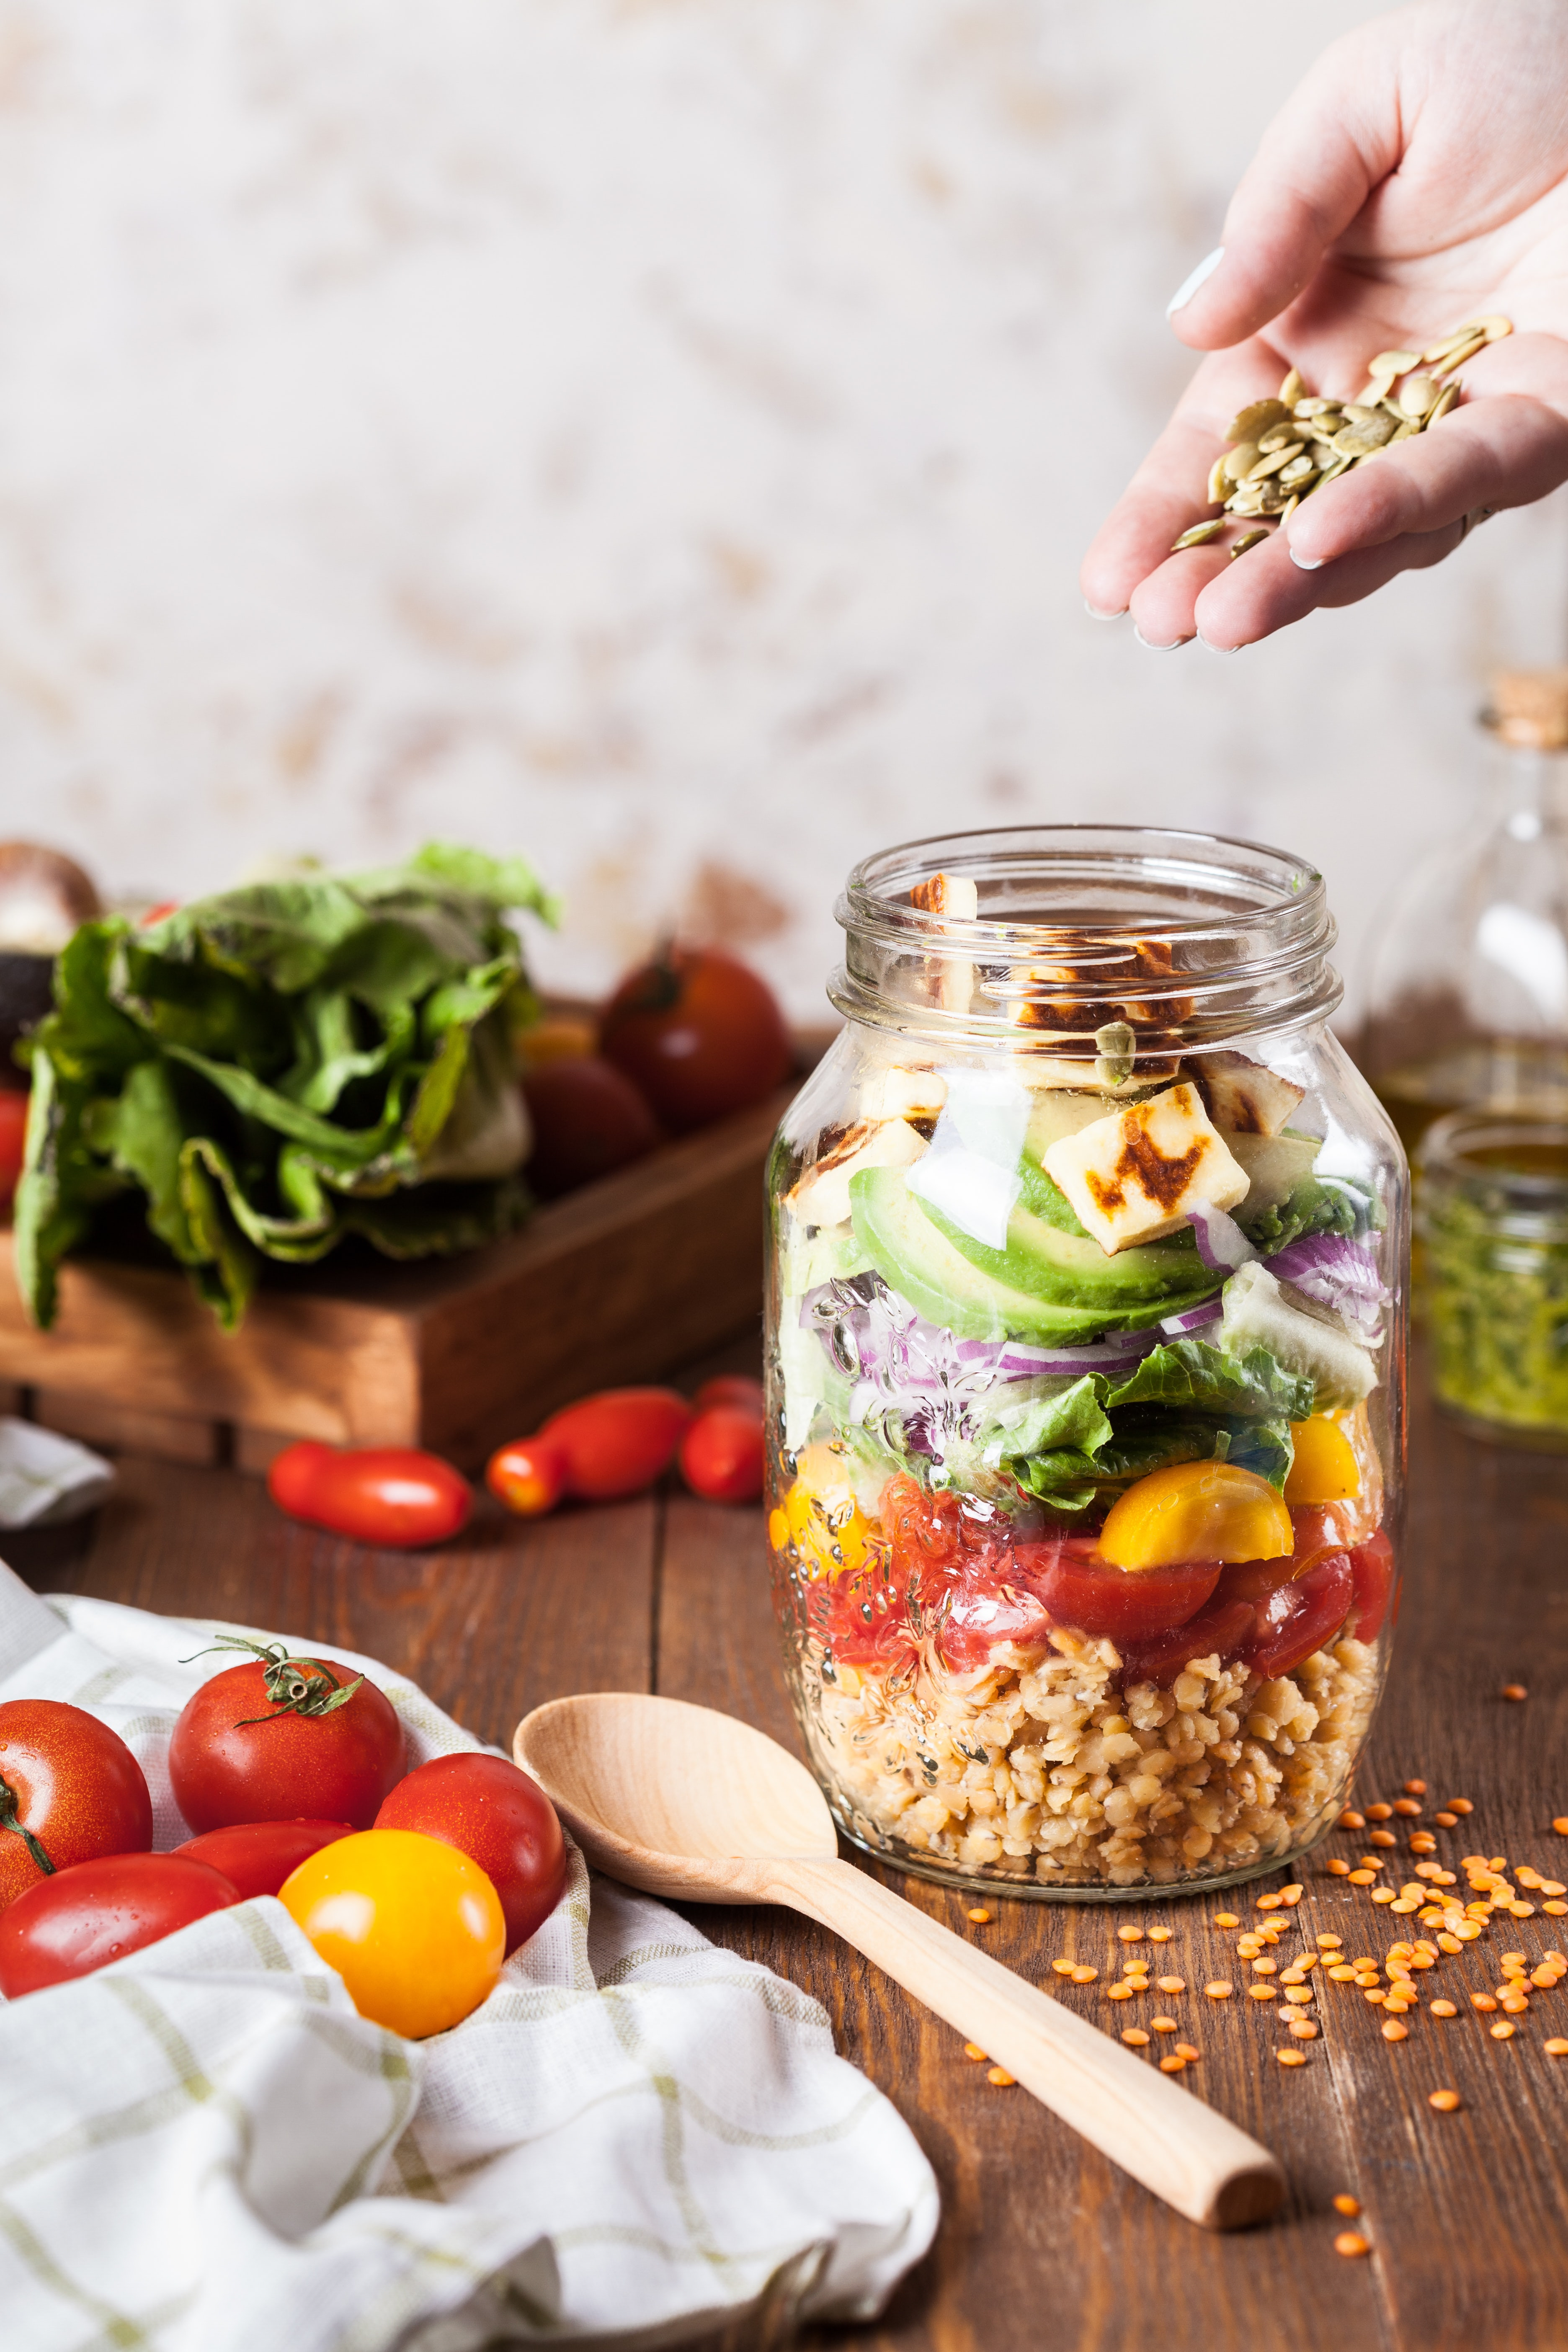 Holistic Nutrition Follow Up Appointment